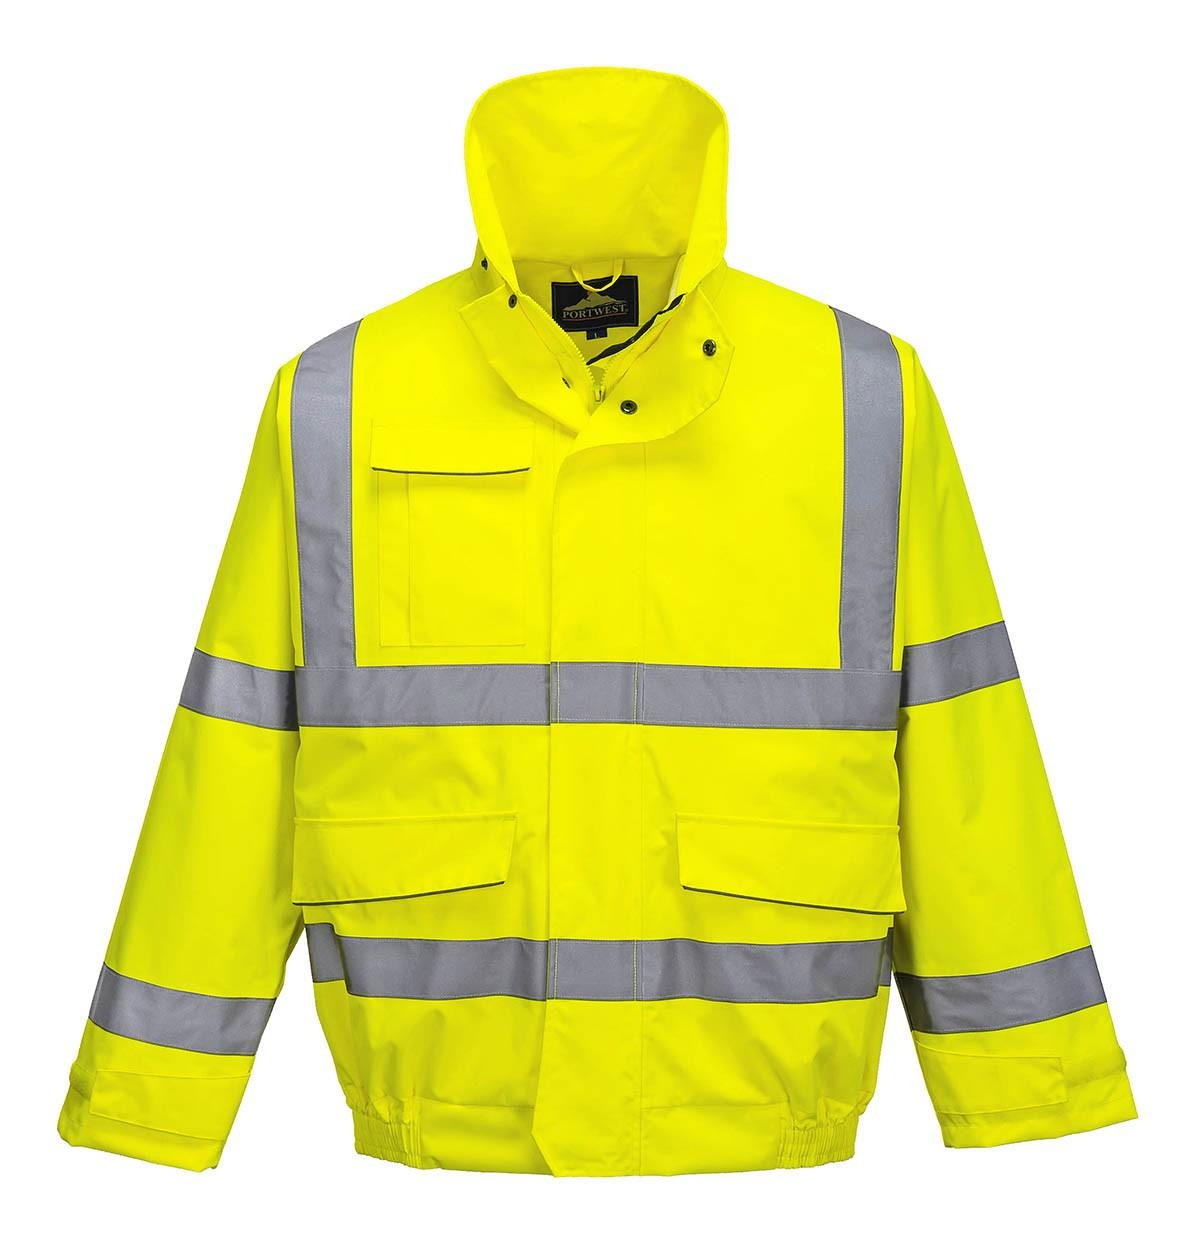 26b4882ef Portwest - Extreme Bomber Jacket - Yellow - Conforms to EN ISO 20471 Class  3 & EN 343 Class 3:3 - PW-S591YER